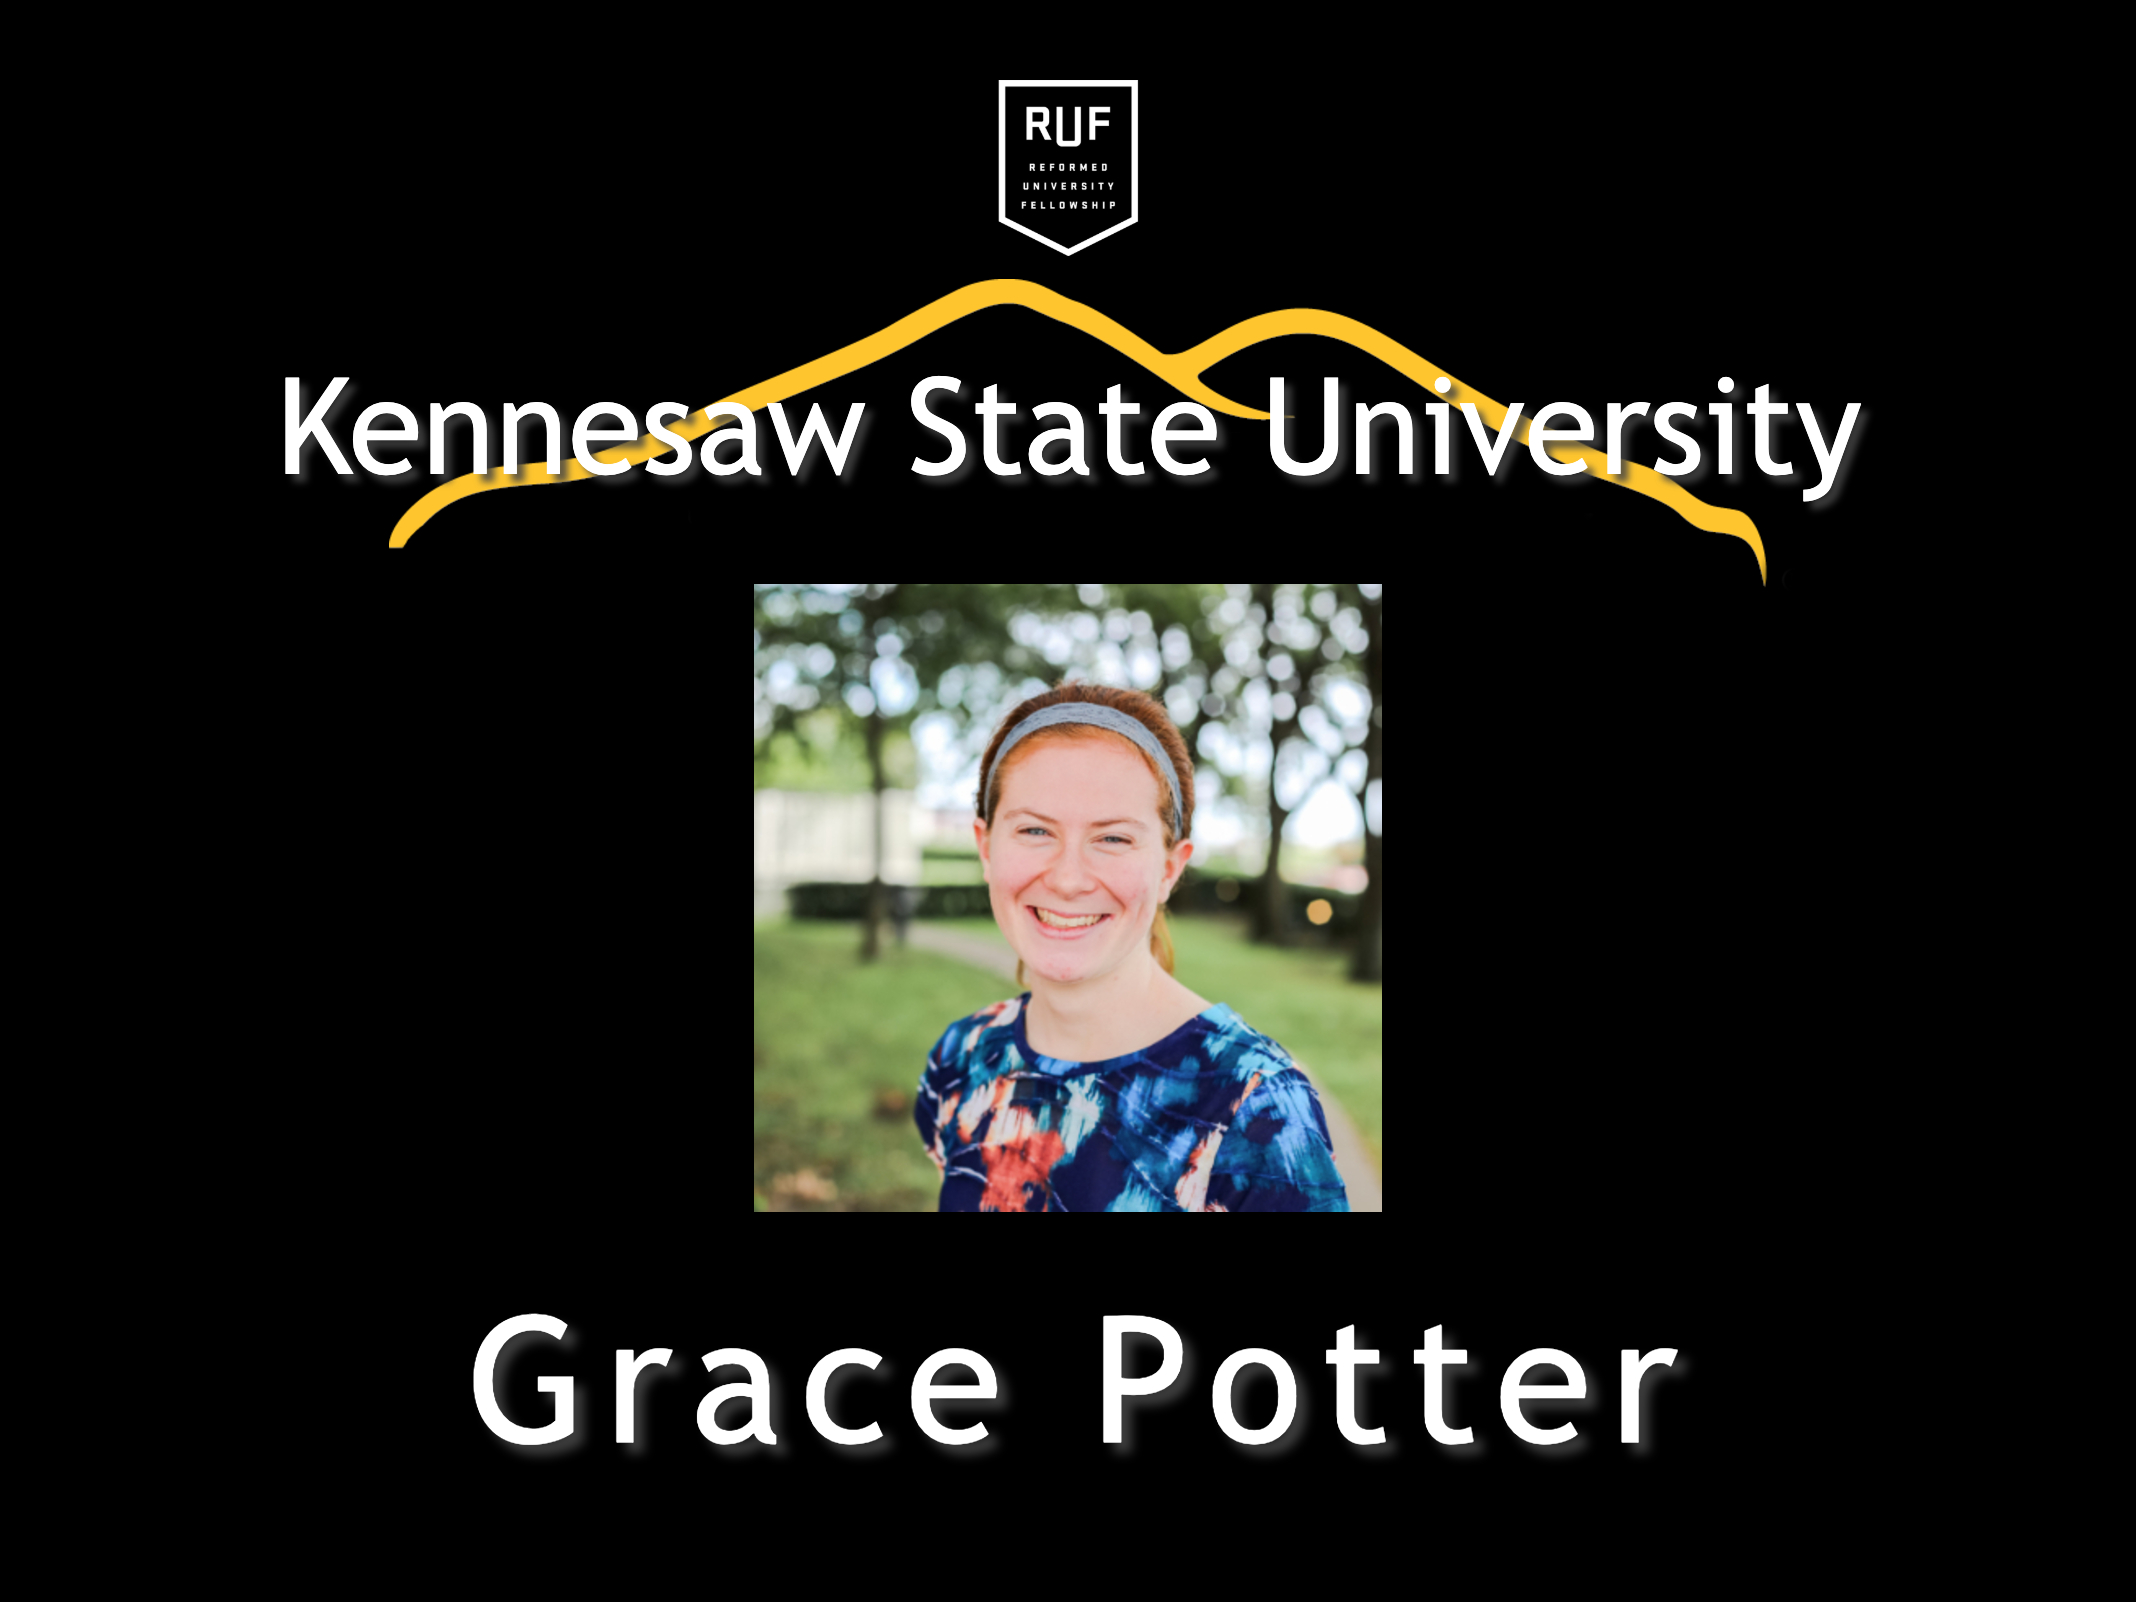 Grace Potter RUF Intern